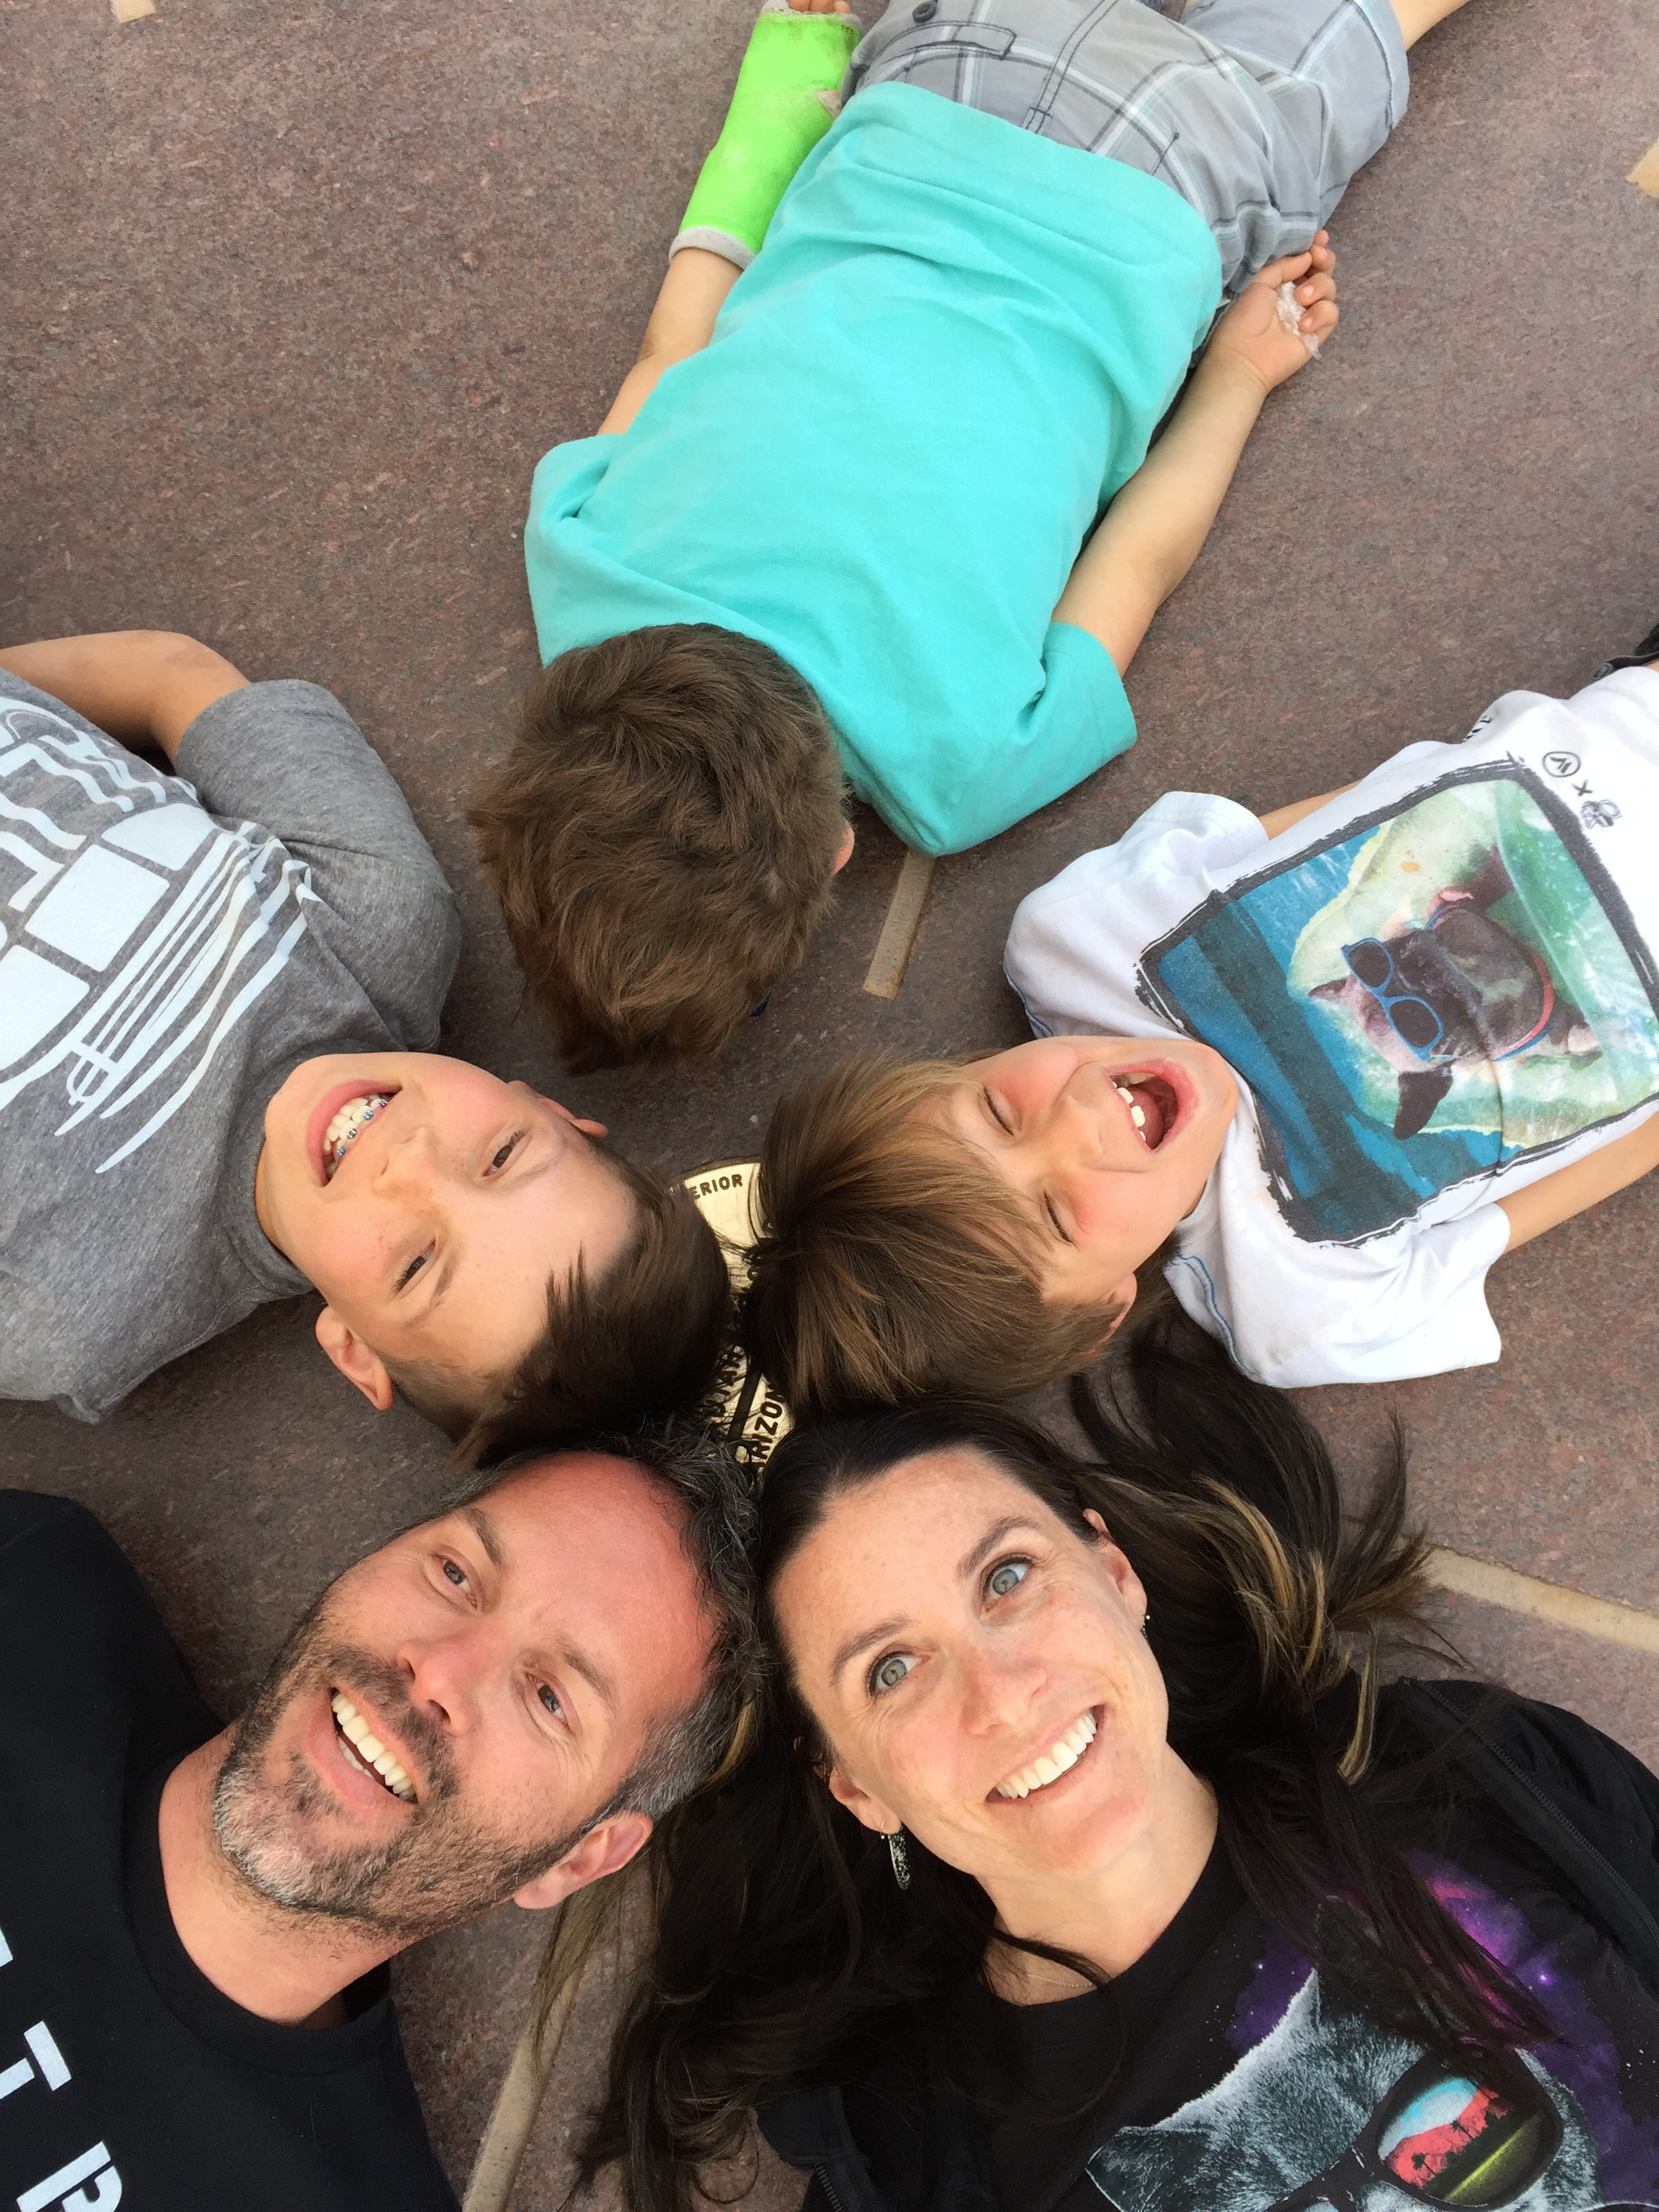 """The Dayton family poses for an official and brief """"Four Corners"""" photo.  One boy wouldn't face up because he didn't get to be in the state of his choosing.  Four Corners Monument, Arizona, Colorado, New Mexico and Utah, April 2015 